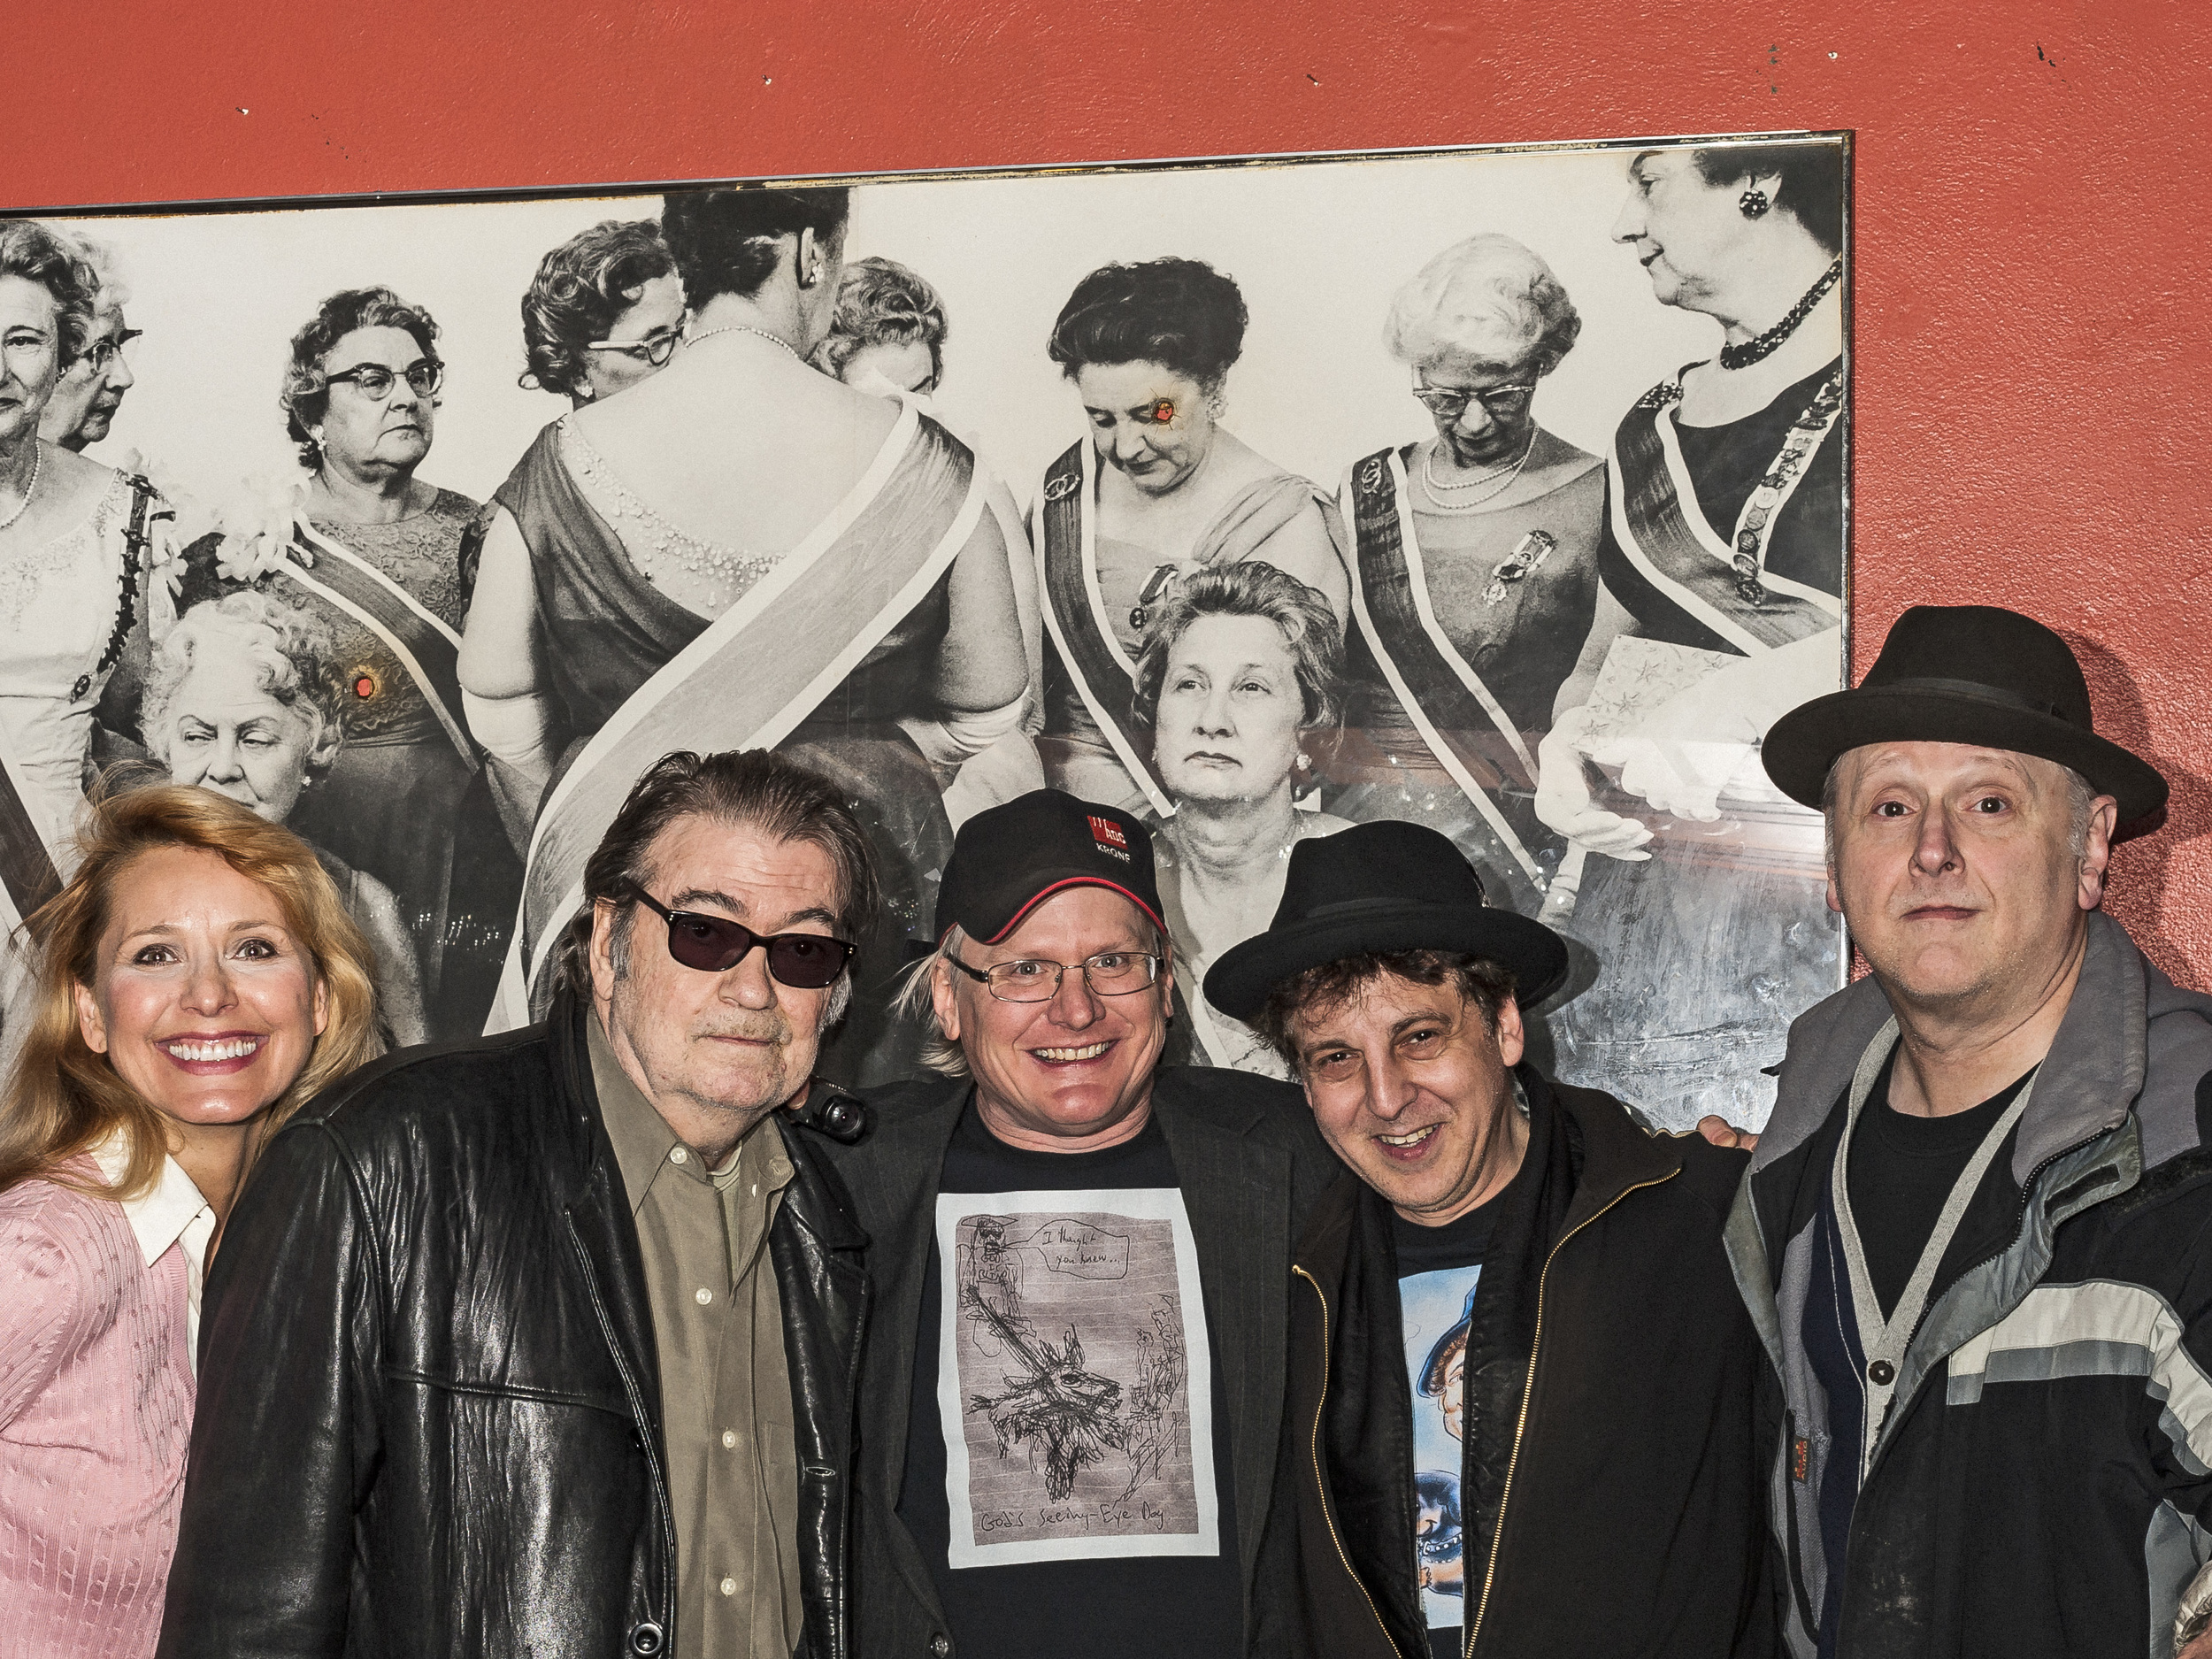 Helen Chorolec, Barry Thomas Goldberg, Michael Johnson, Magic Marc and Arne Fogel / Black Forest Inn ( Gun-sho  t Avedon still at home in Minneapolis German restaurant ) / Minneapolis, Minnesota / January 29th, 2015 / Photo by Gamini Kumara